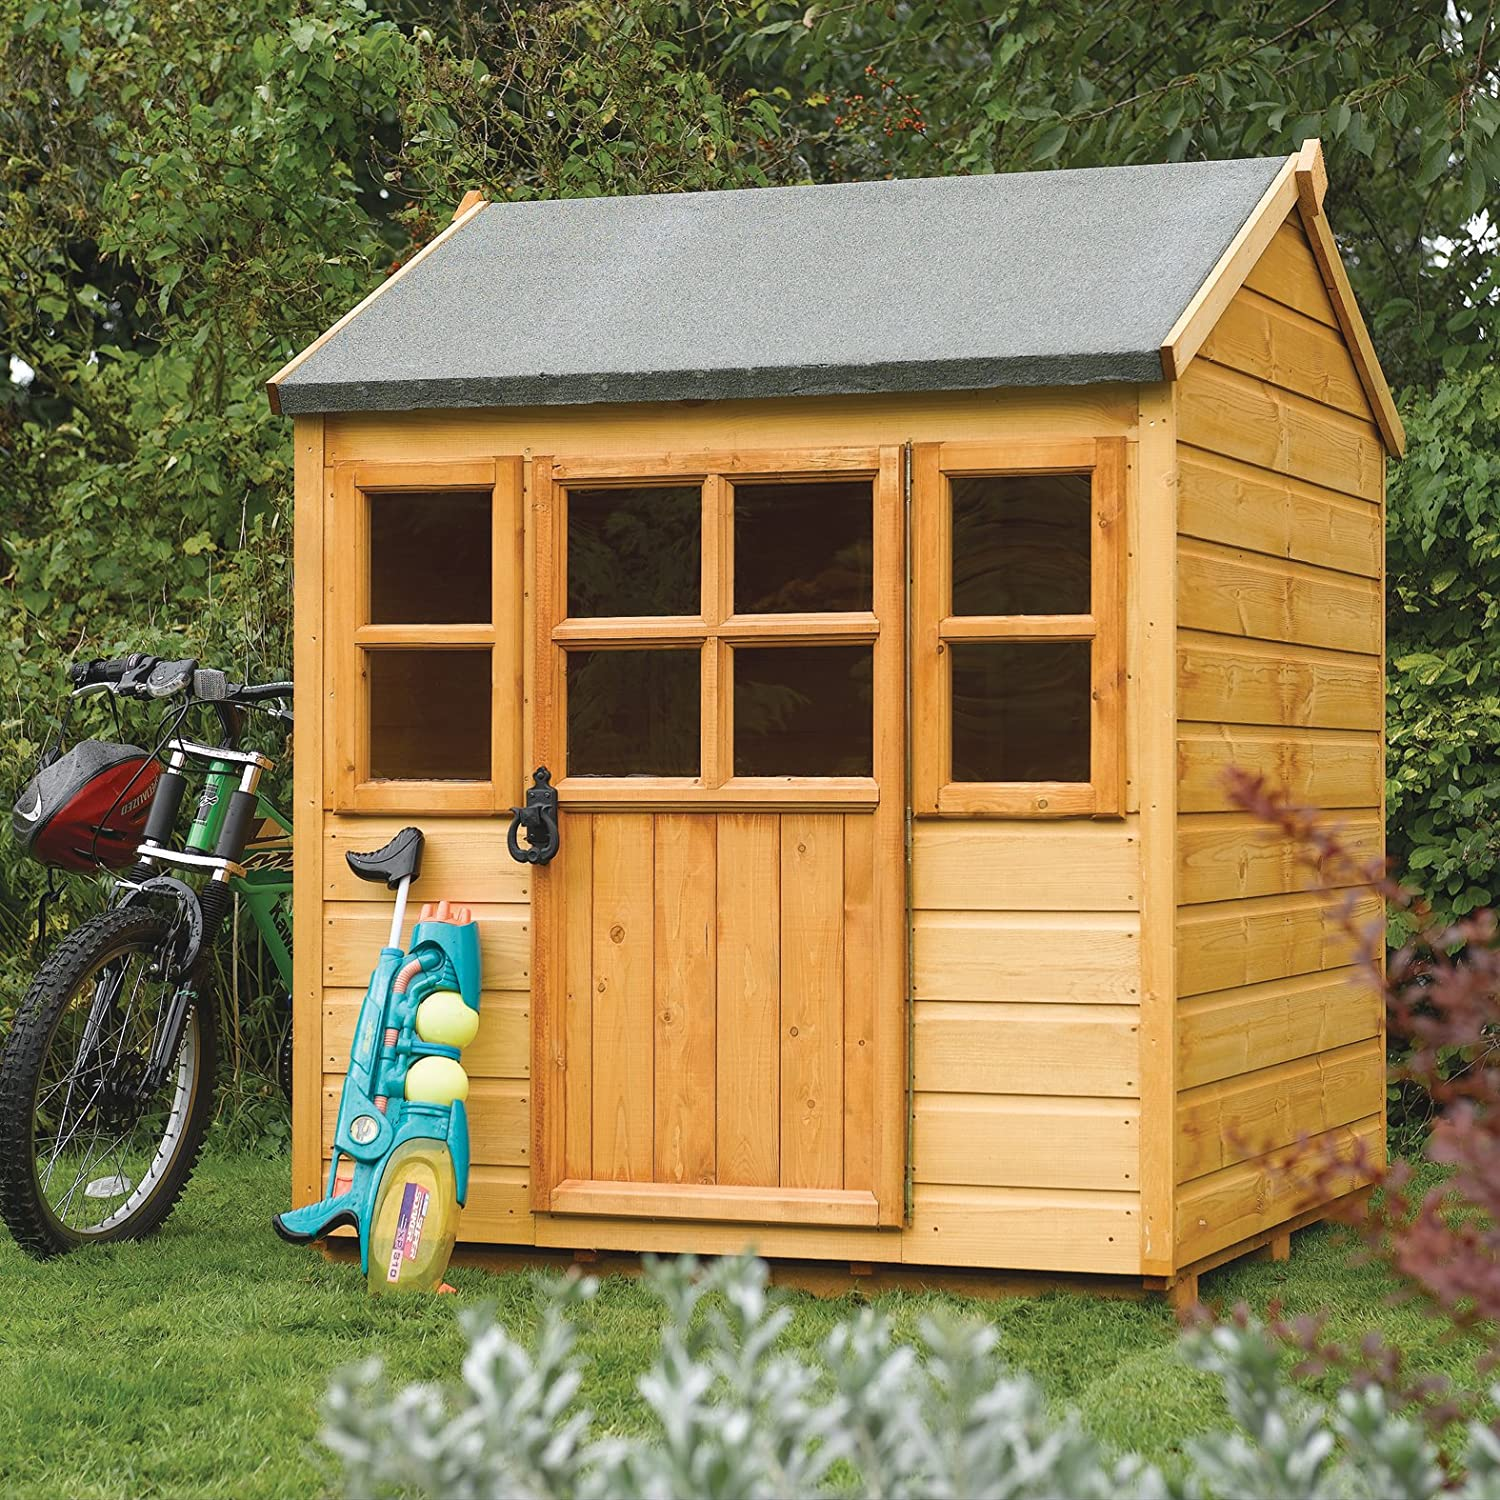 amazoncom bosmere phlodge rowlinson little lodge kids wooden play house honey brown finish garden outdoor - Garden Sheds For Kids